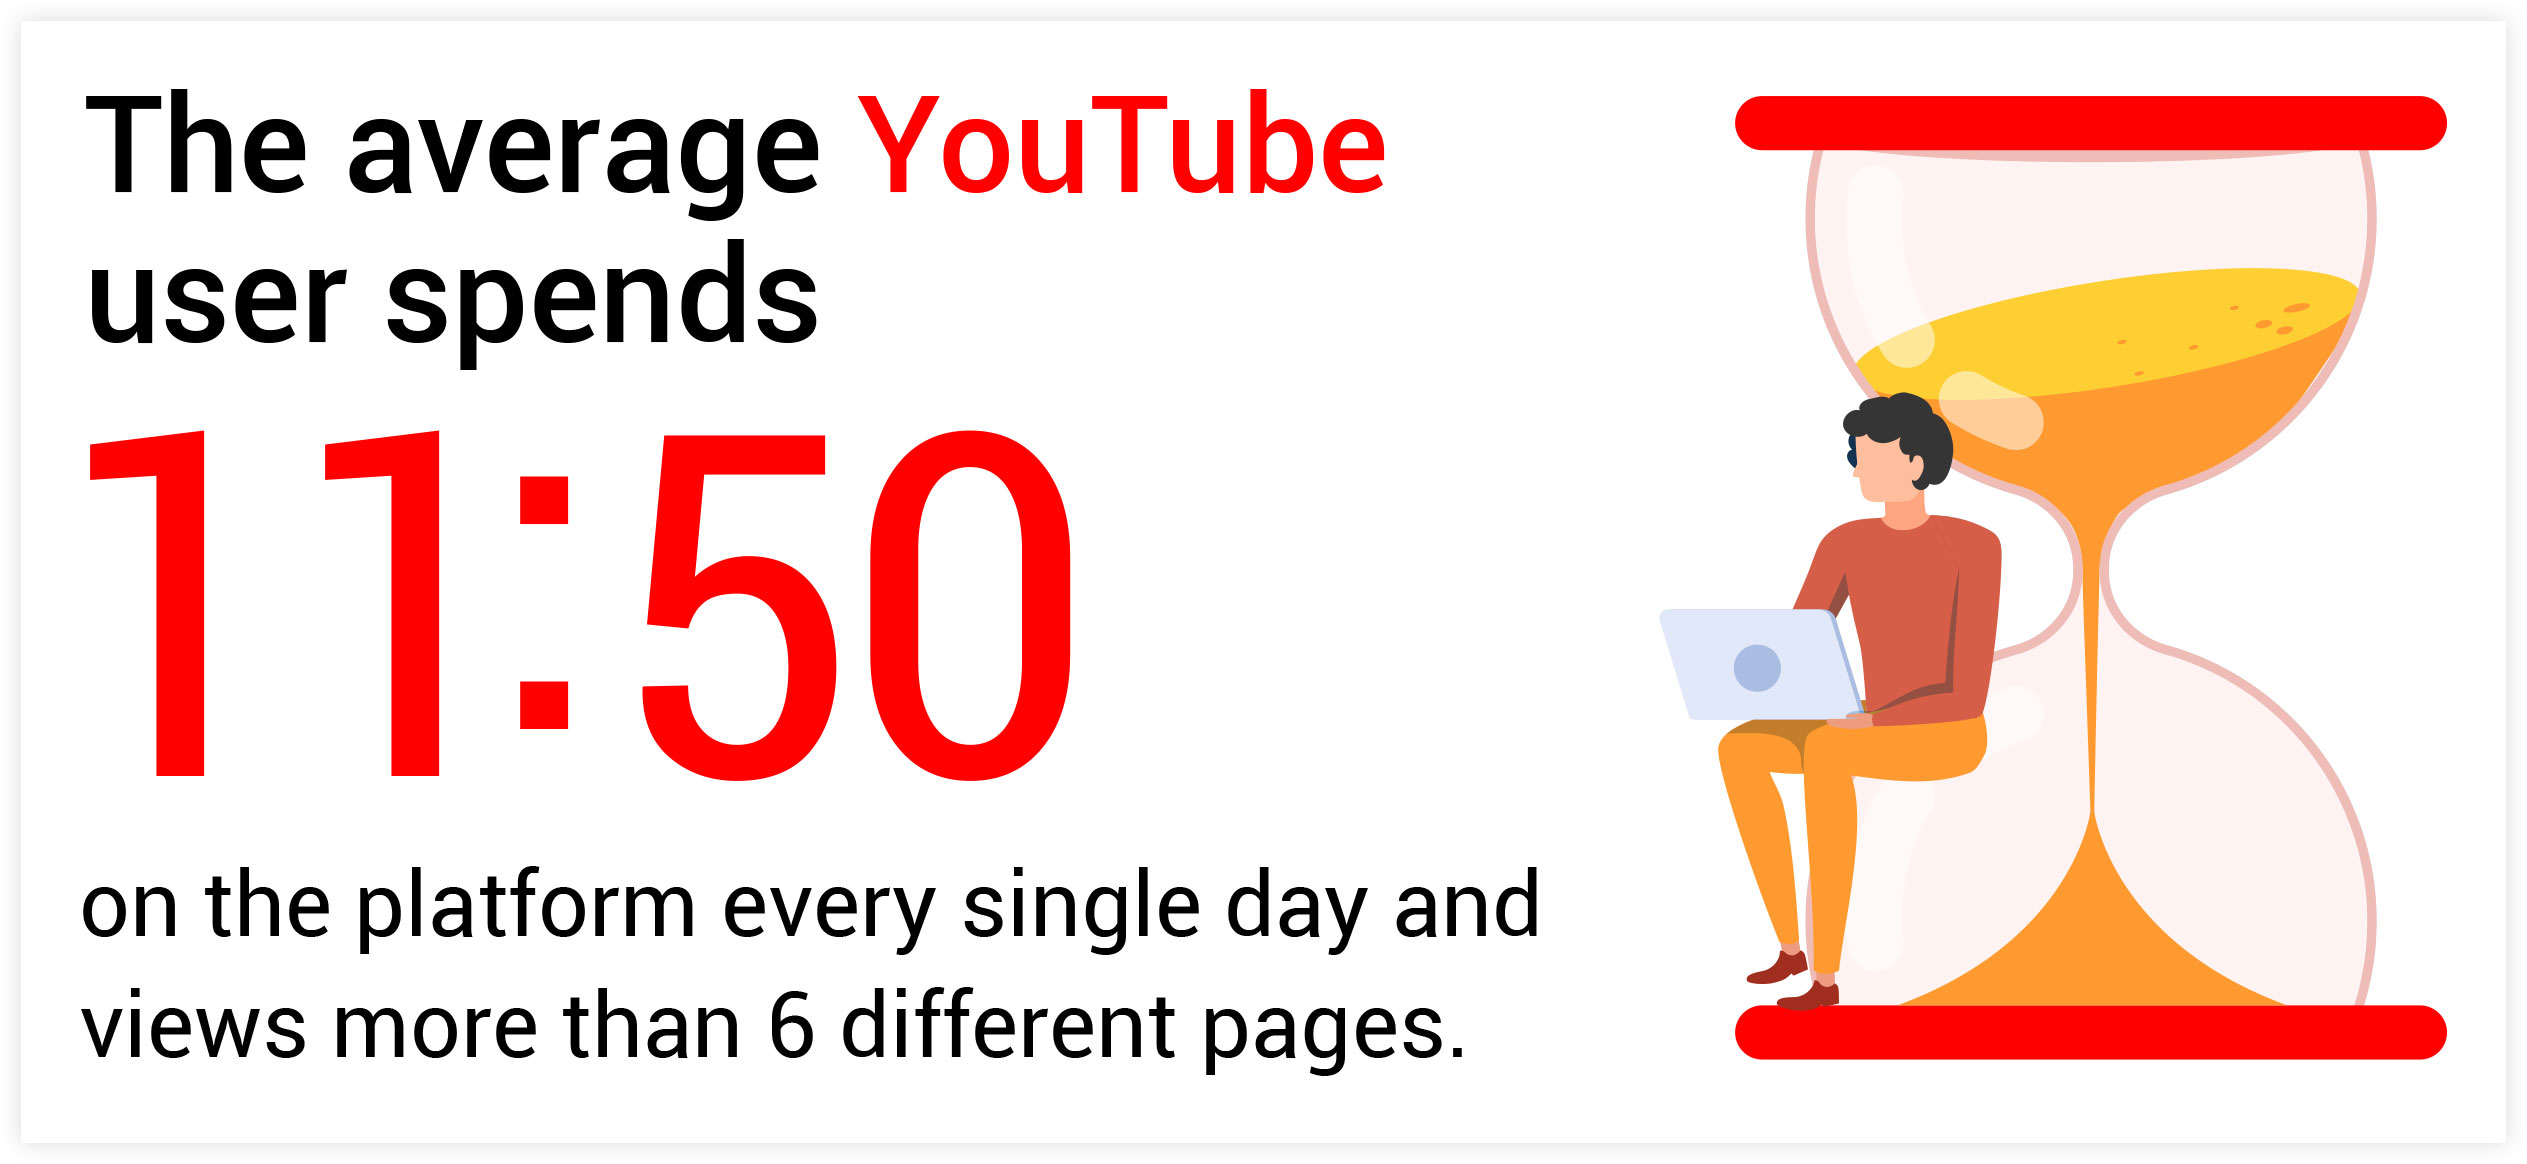 YouTube Statistics - Daily Content Consumption